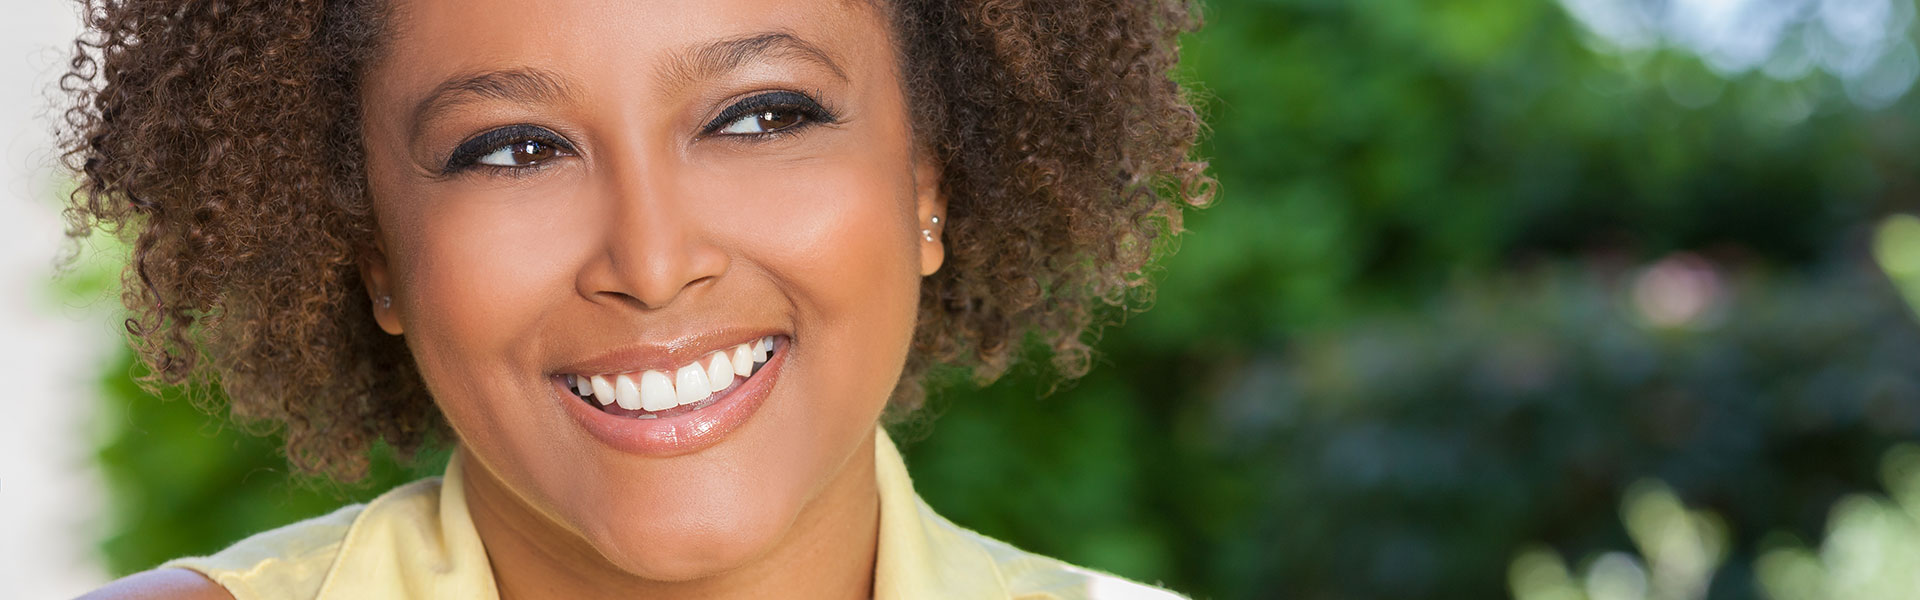 middle-aged woman with a perfect smile after dental cosmetic treatment